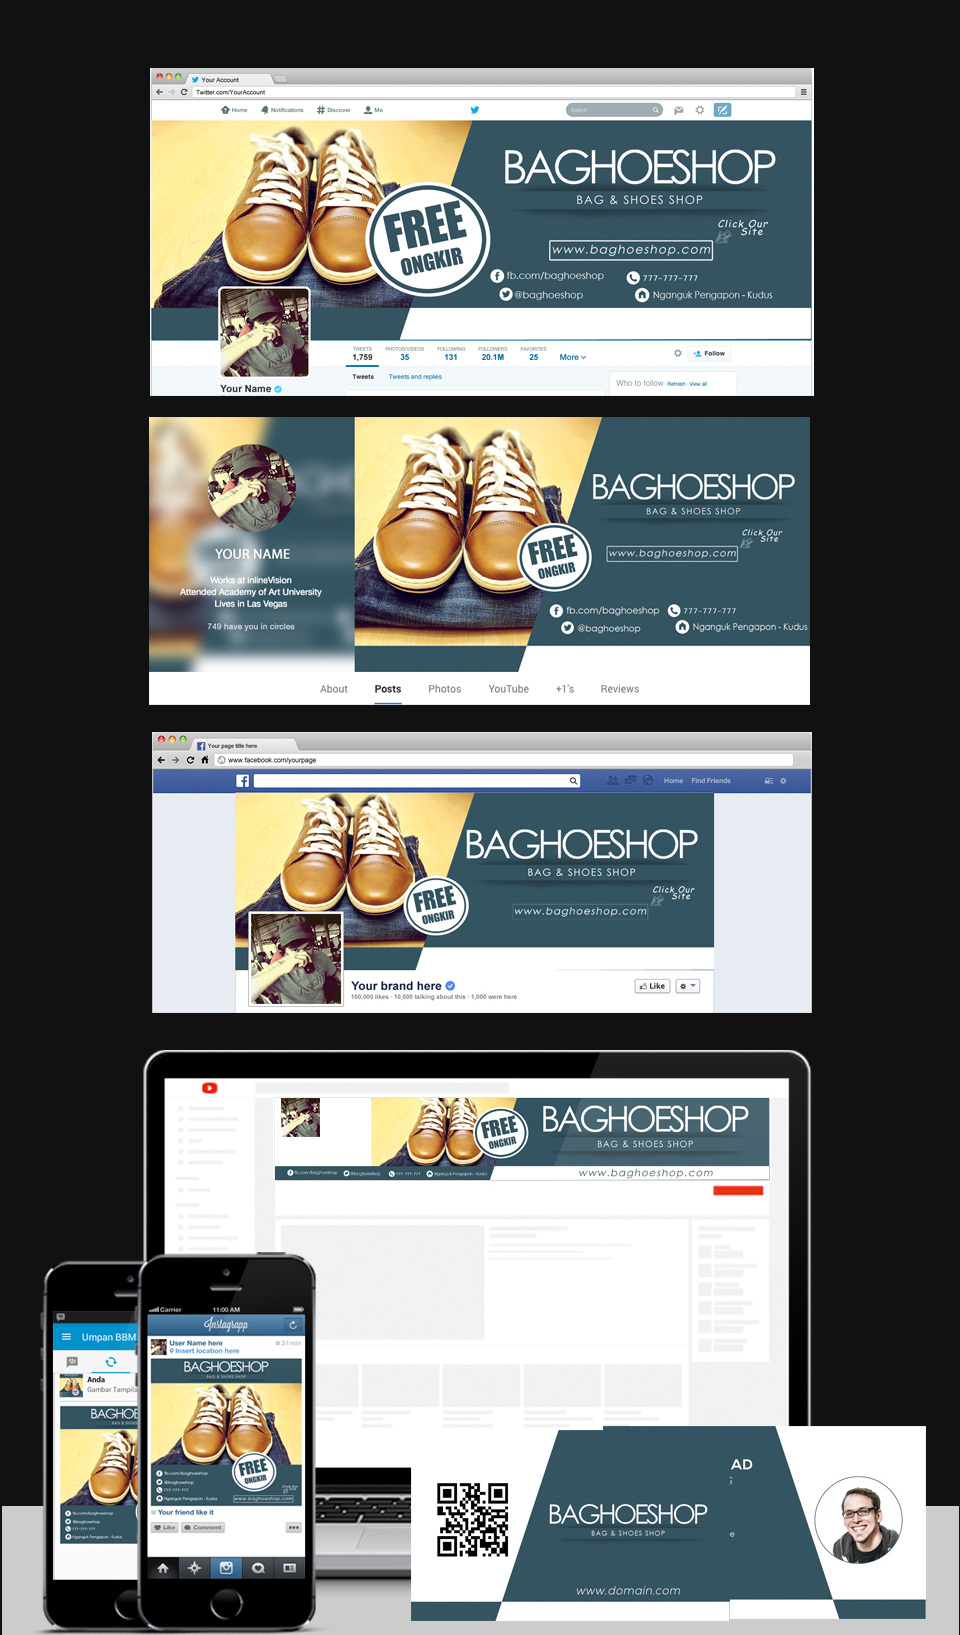 Bag & Shoes Shop Social Media Templates.